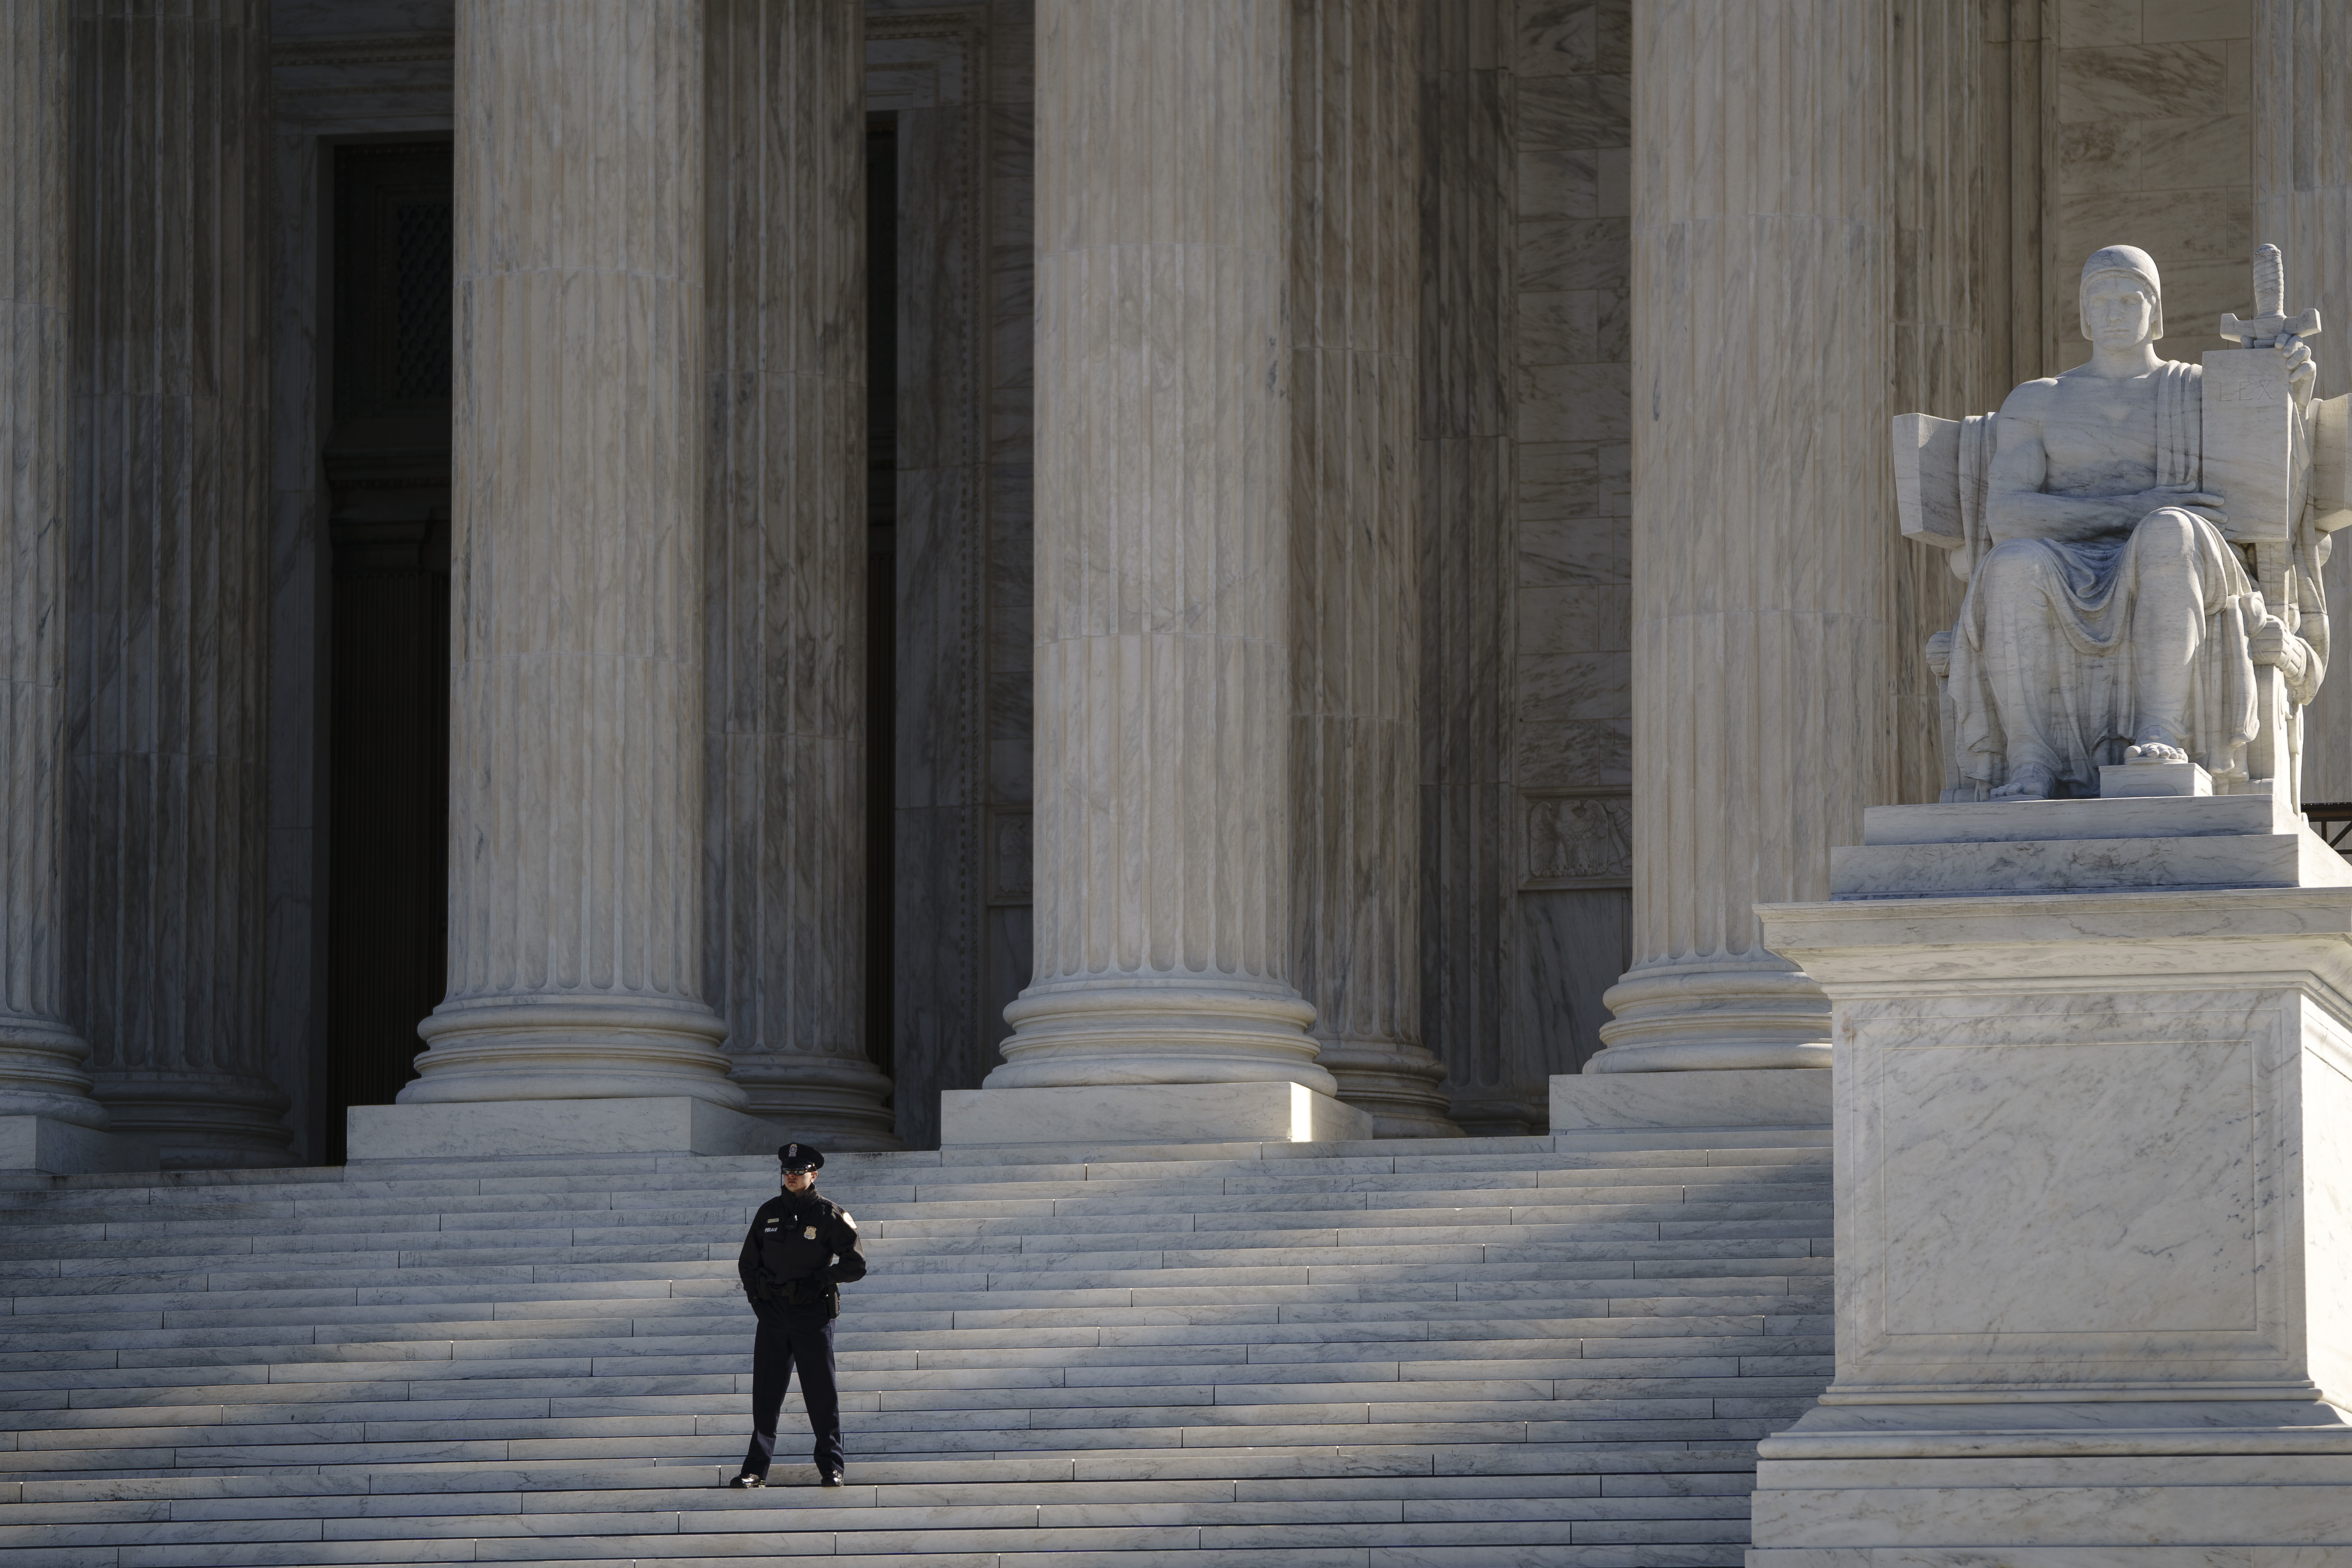 WASHINGTON, DC - MARCH 02: A Supreme Court Police officer stands watch on the steps outside the U.S. Supreme Court on March 2, 2020 in Washington, DC. On Monday, the U.S. Supreme Court is hearing a major case concerning the rights of some asylum seekers to challenge their expedited removal from the country. The Trump administration is asking the Supreme Court to reverse an opinion of the 9th Circuit Court of Appeals that would allow some individuals who have been denied asylum the opportunity to make a claim in federal court. (Photo by Drew Angerer/Getty Images)